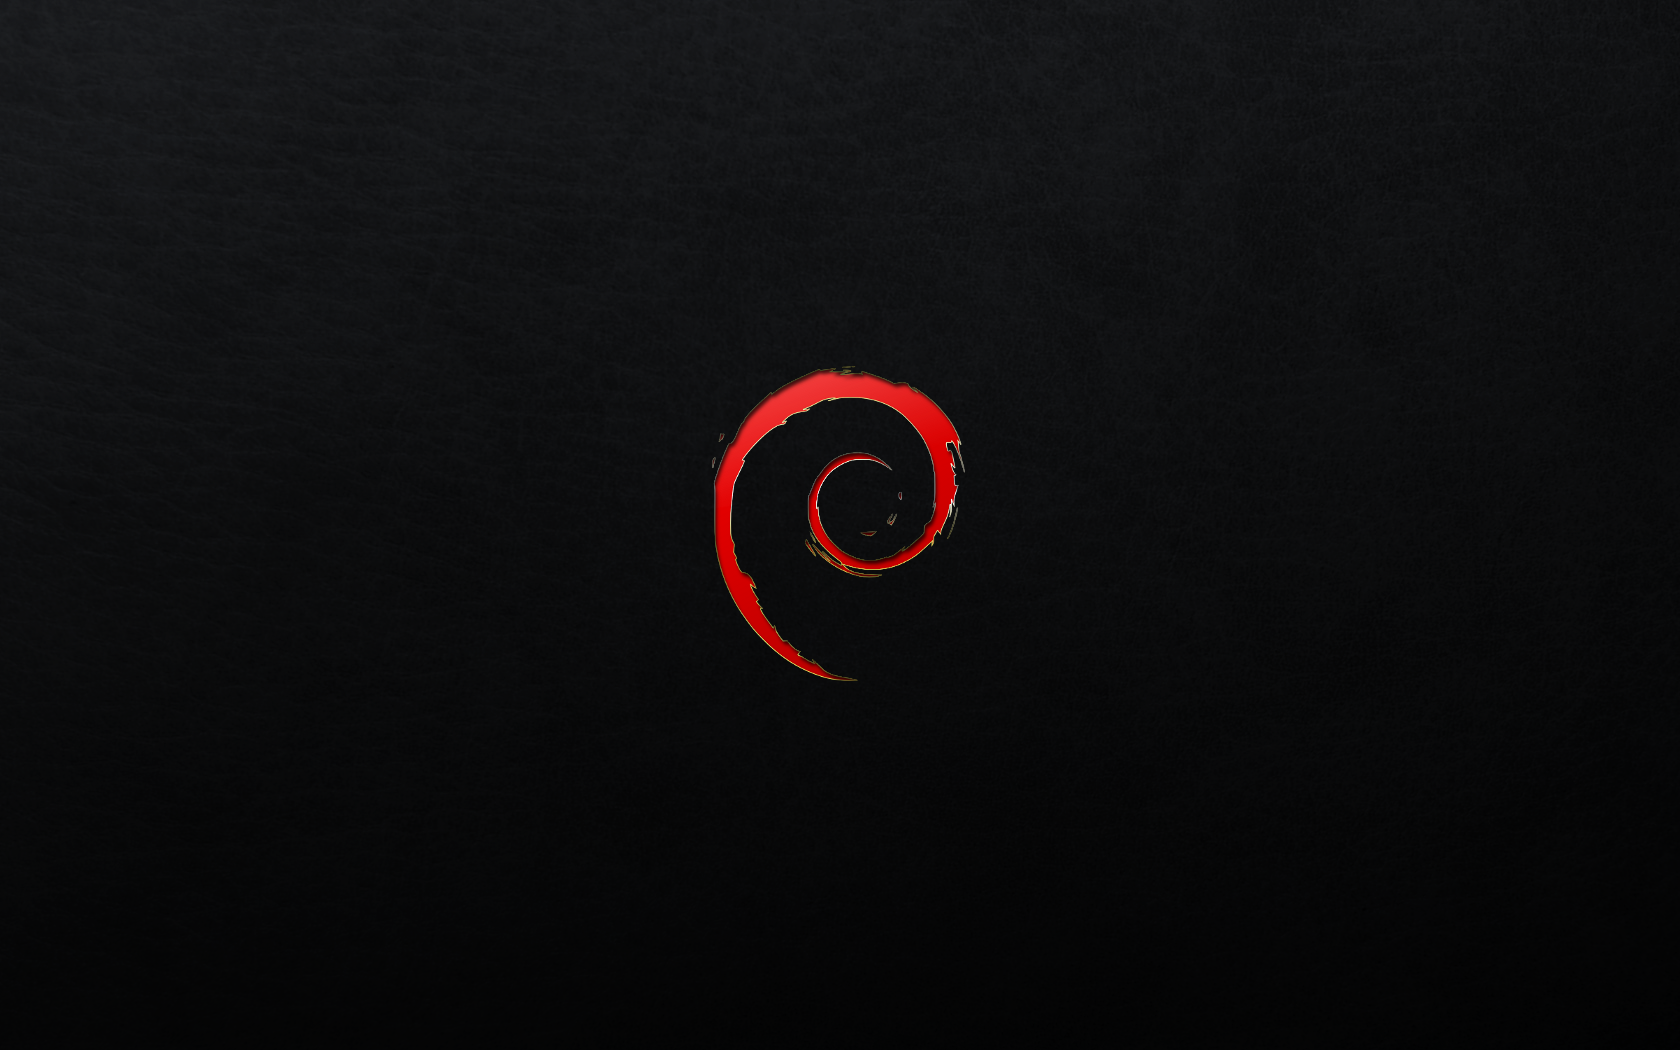 WallPaper Debian WallPaper Debian WallPaper Debian WallPaper Debian 1680x1050